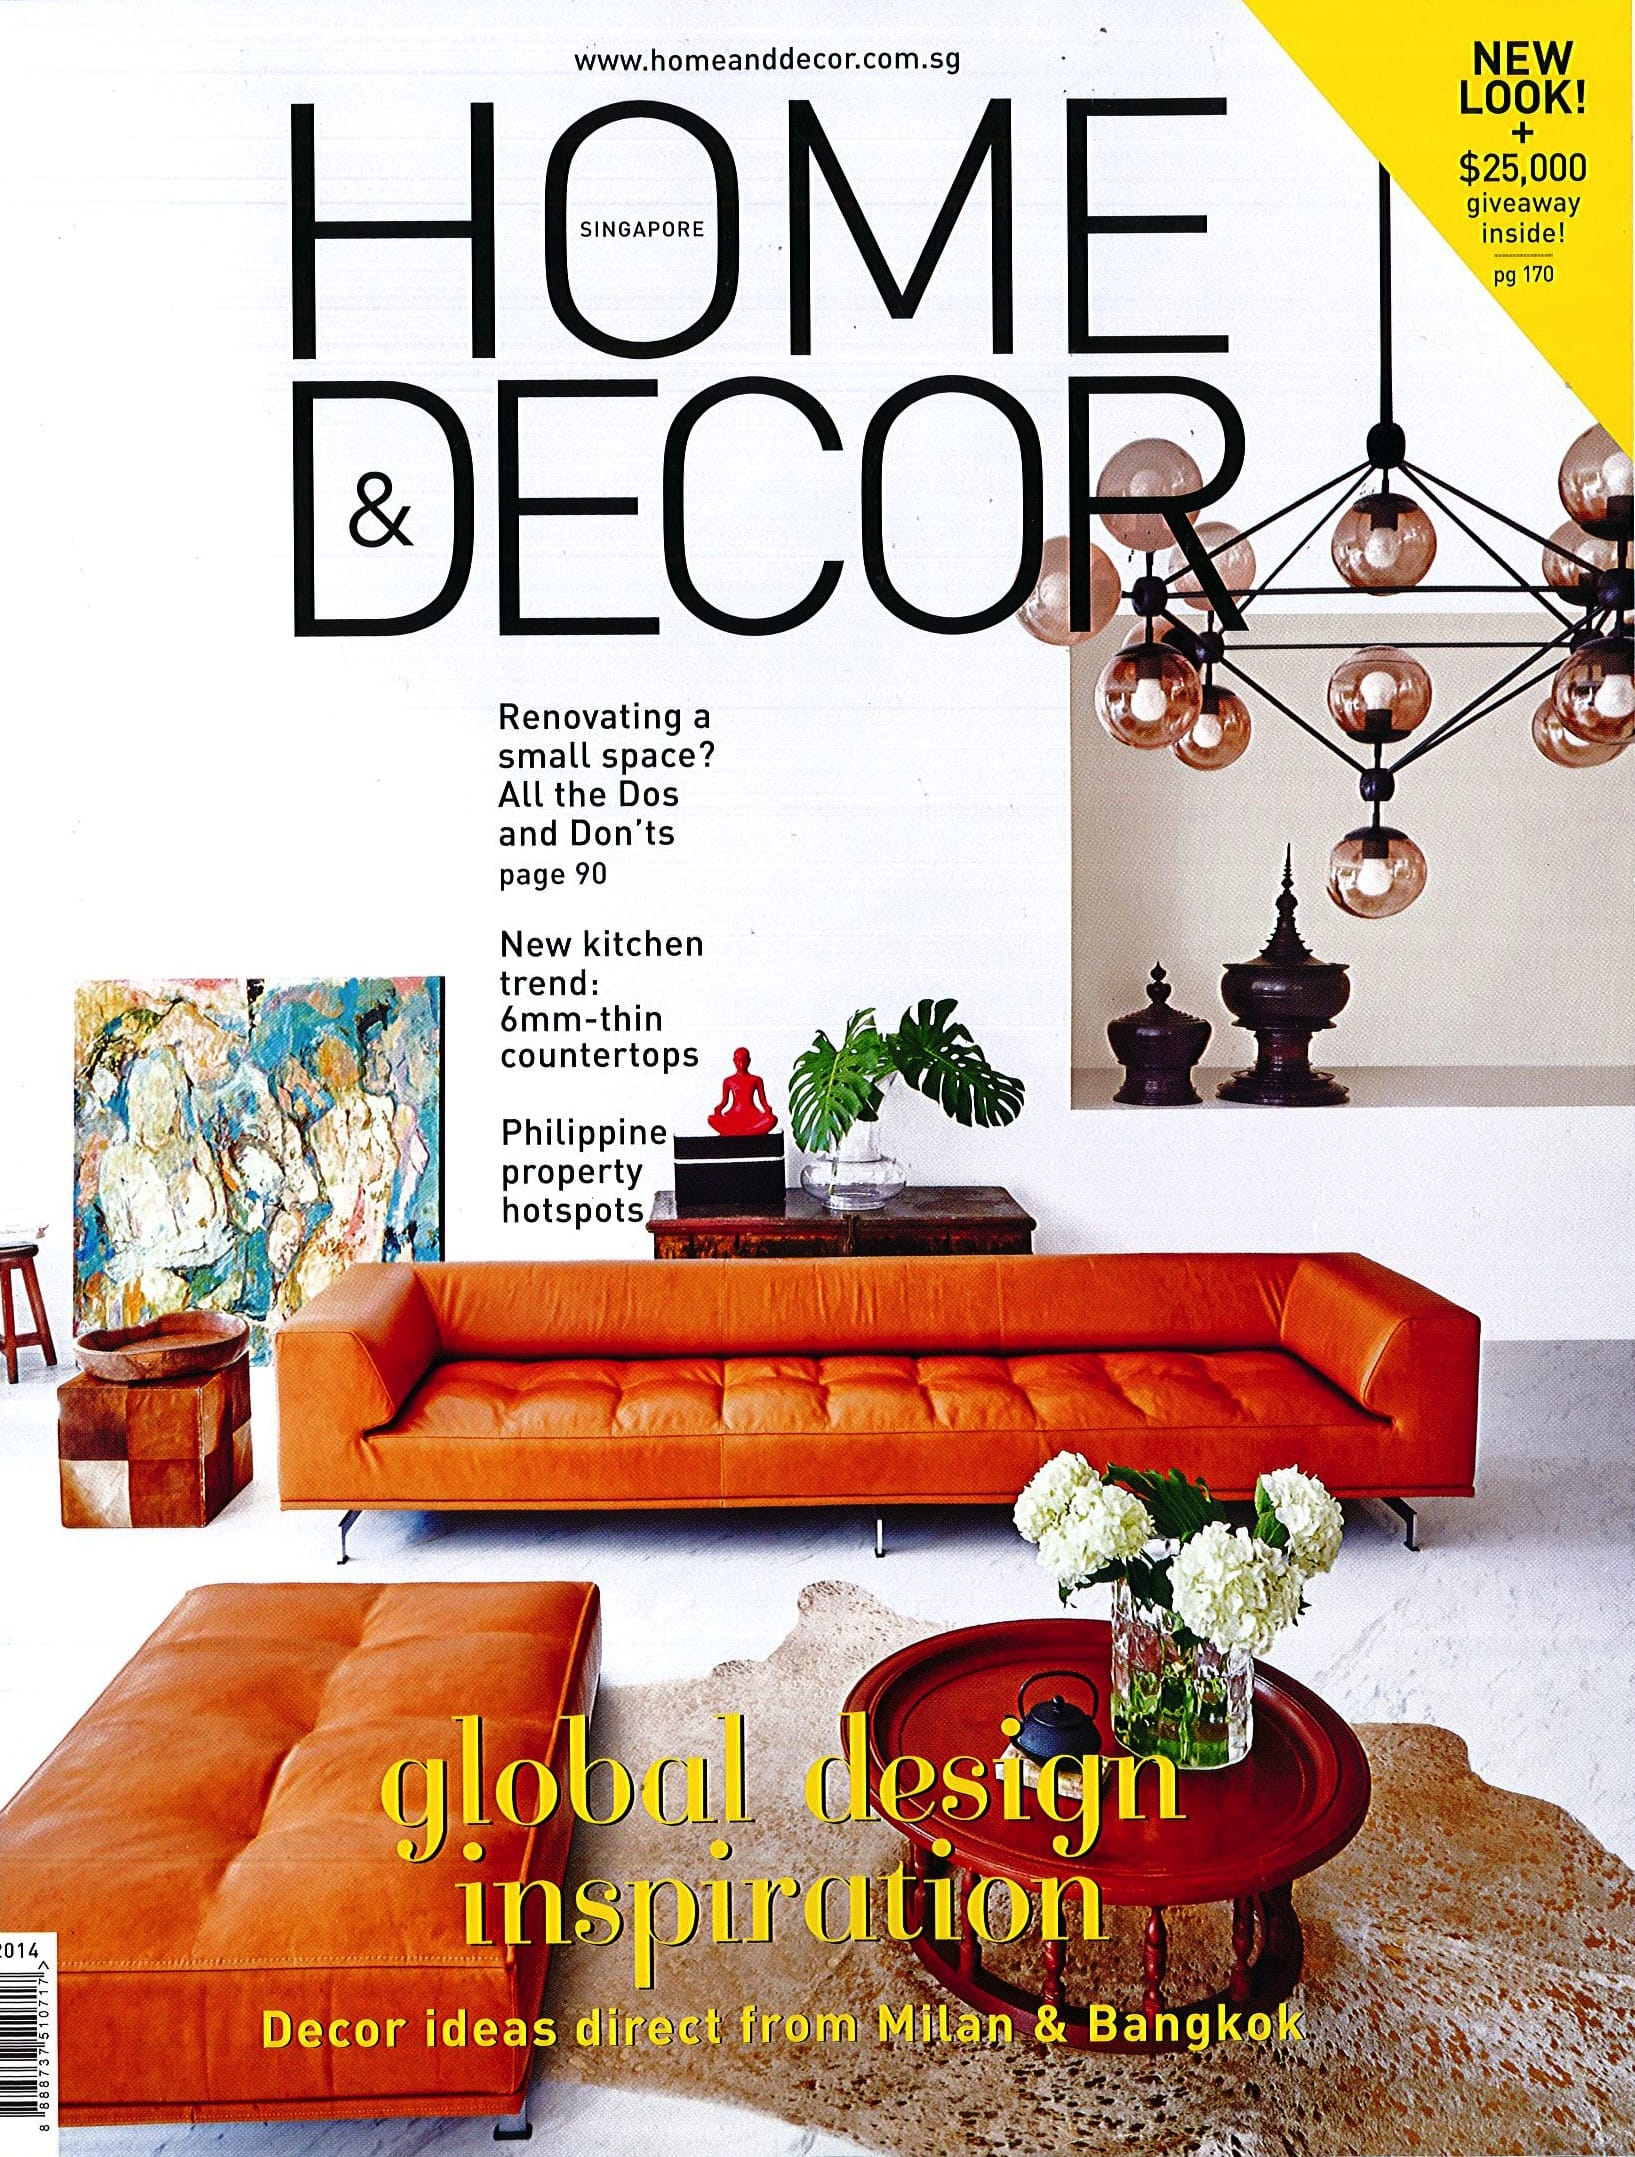 Home & Decor - July 2014